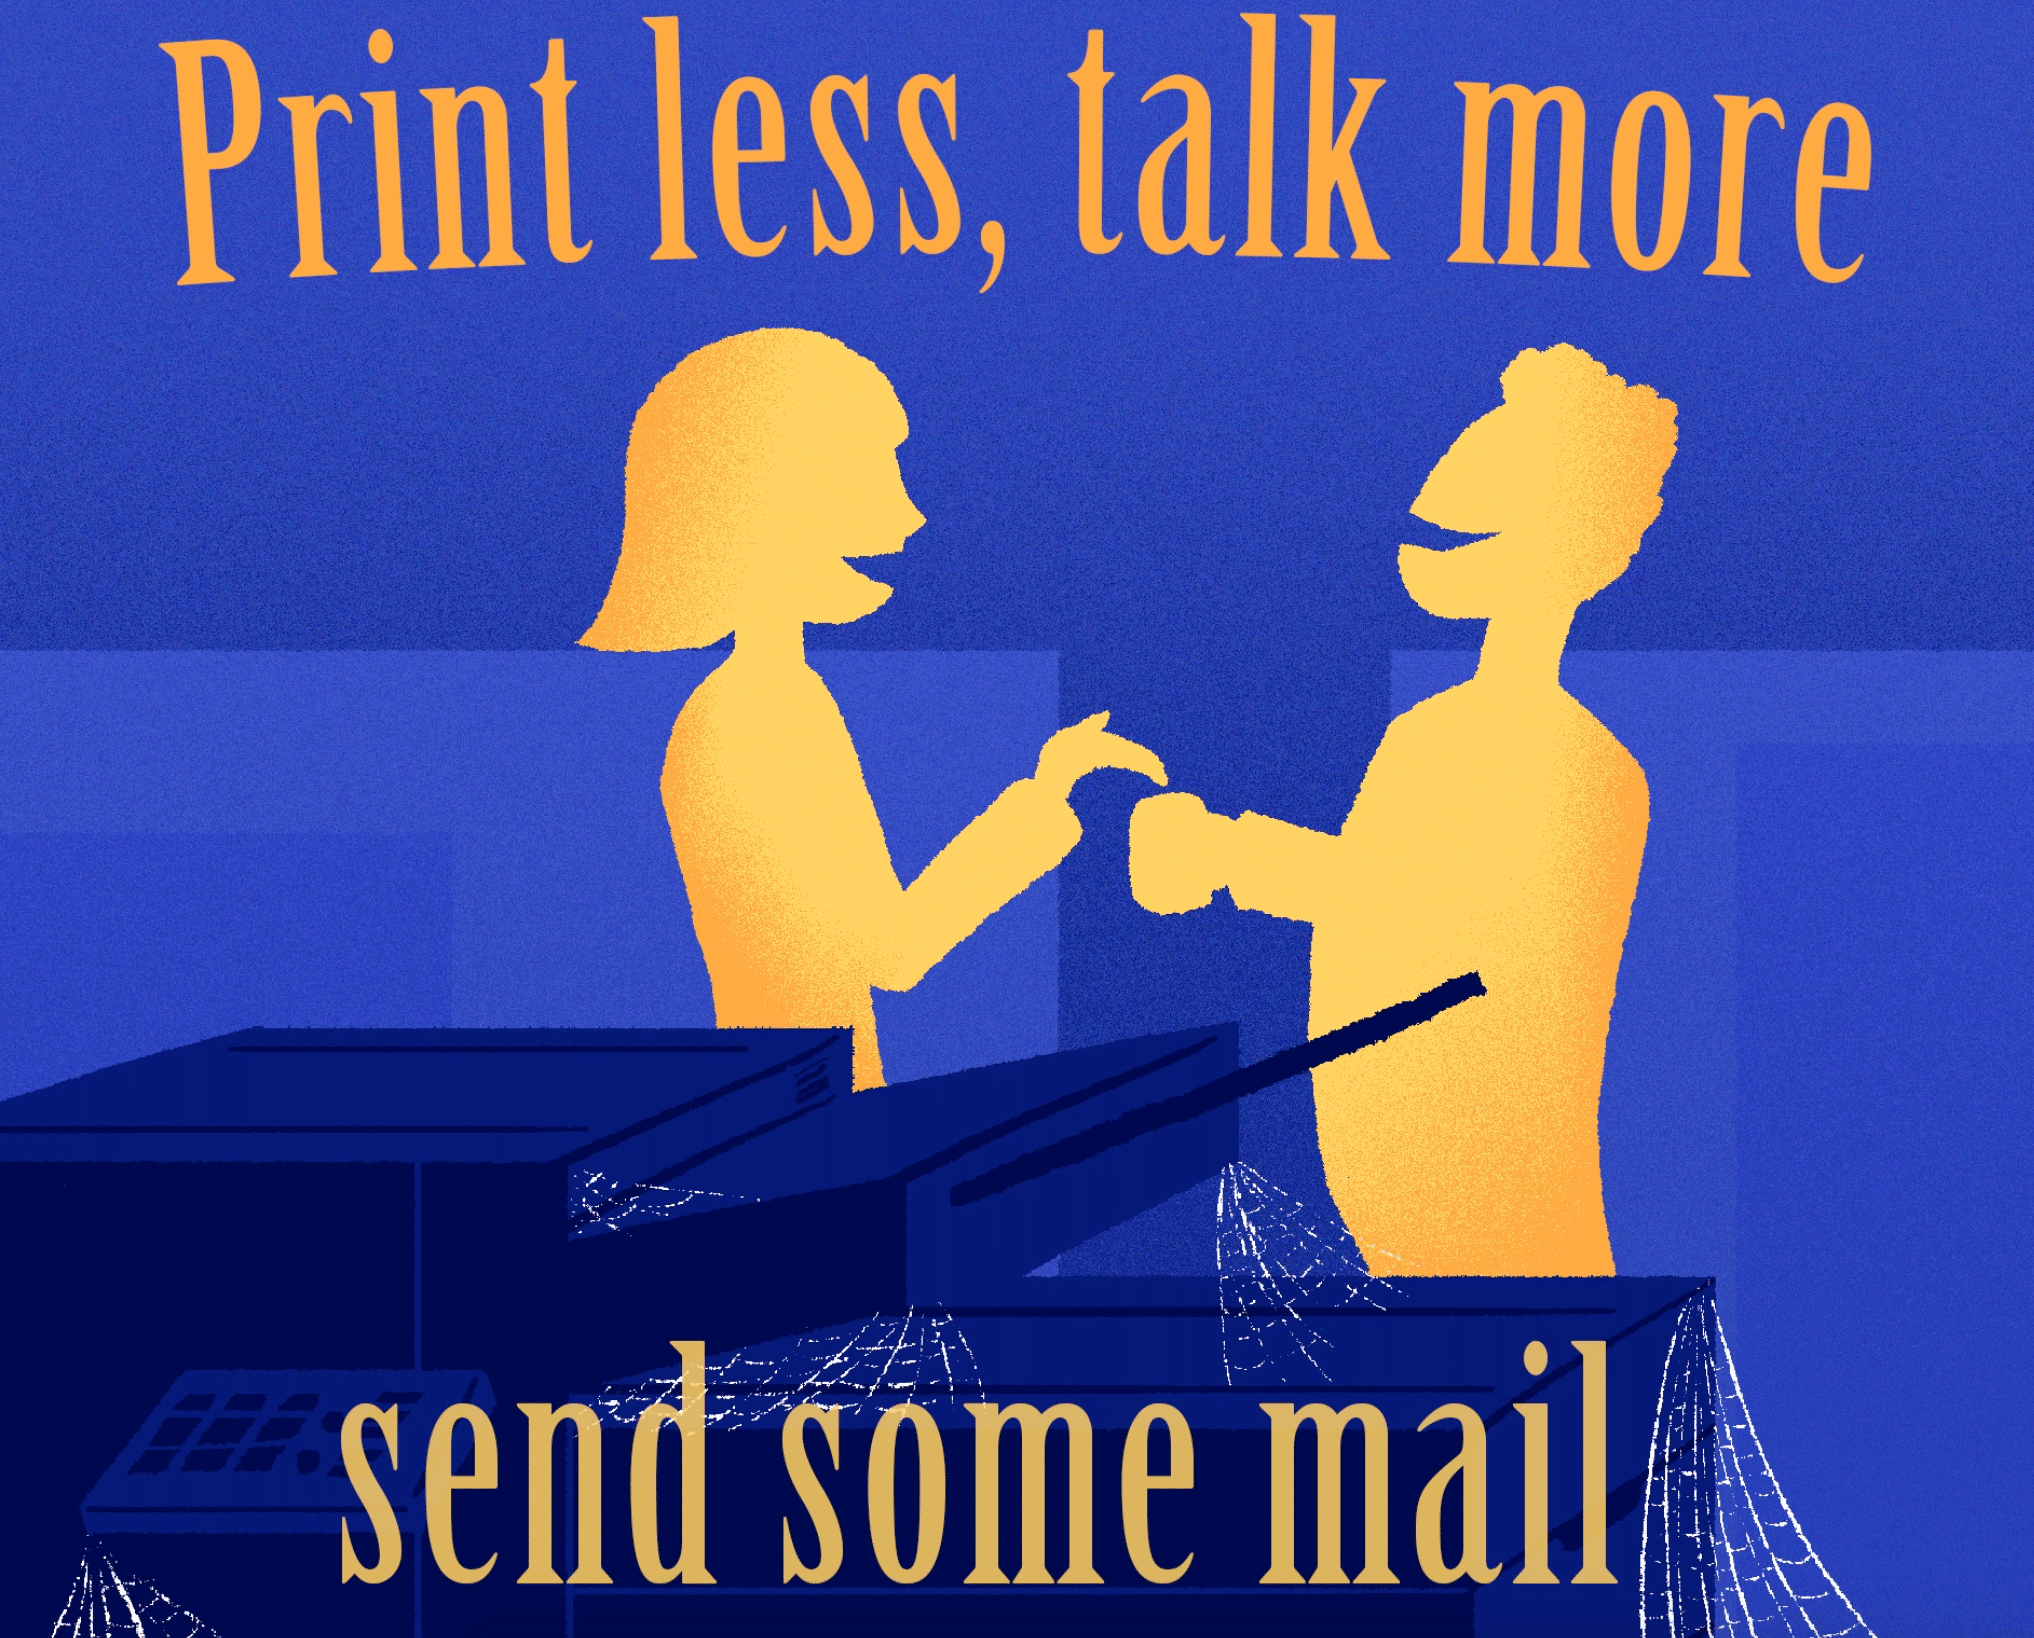 Print less, talk more, send some mail - work solutions